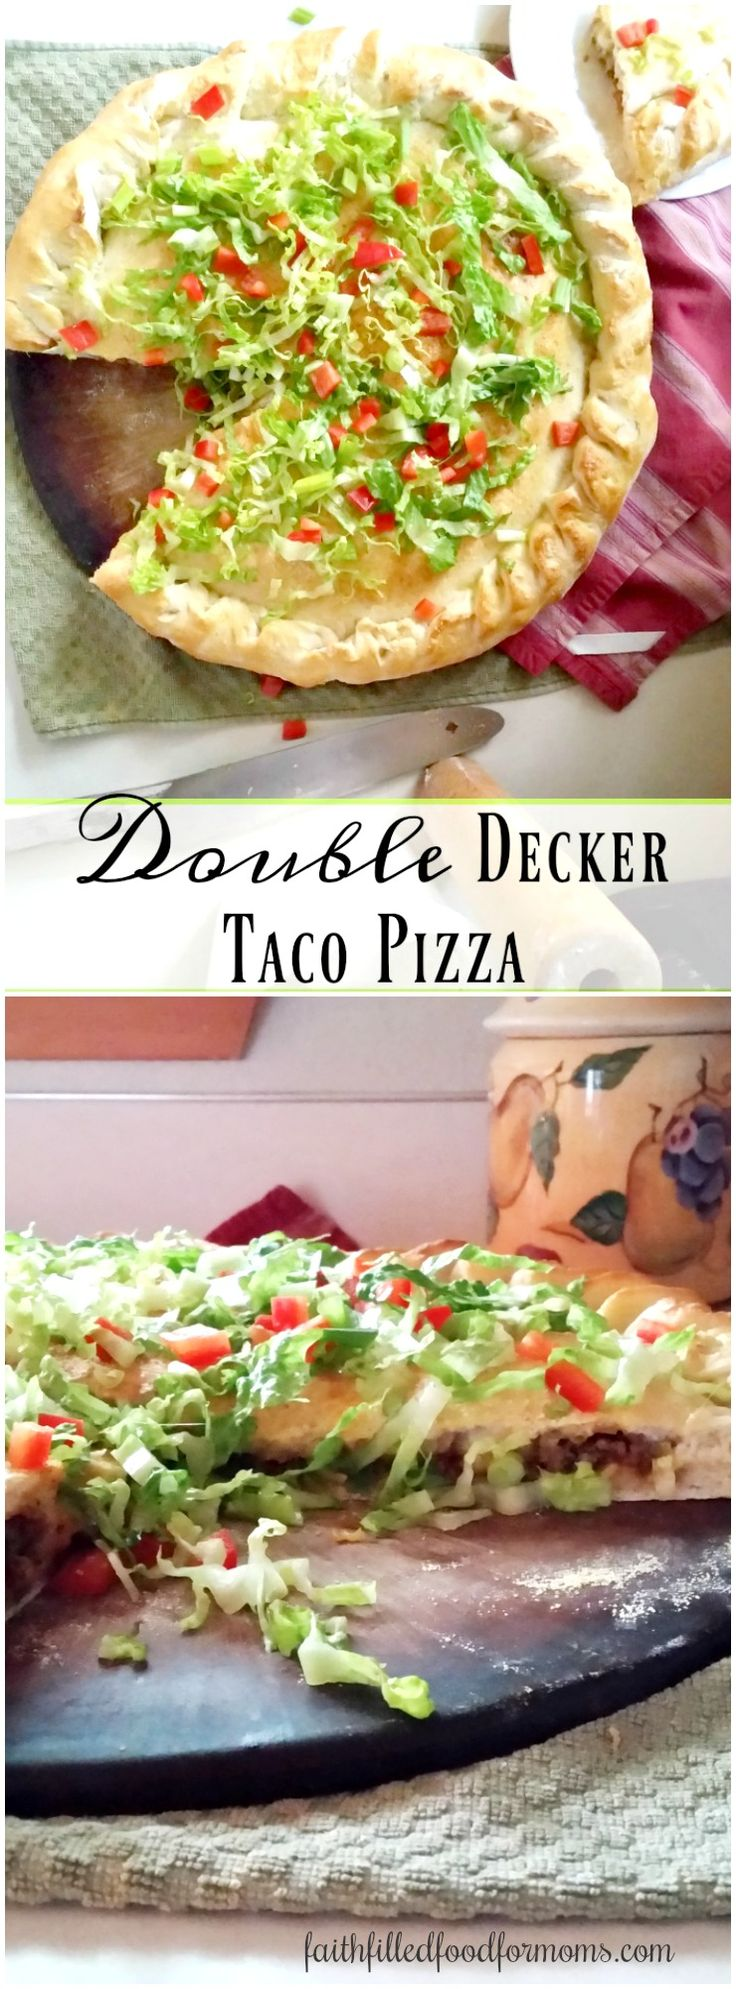 If you love tacos and you love pizza, this homemade Double Decker Taco Pizza will be a family favorite! Step up your pizza game with these super easy homemade pizza dough recipe! #pizza #pizzadough #homemade